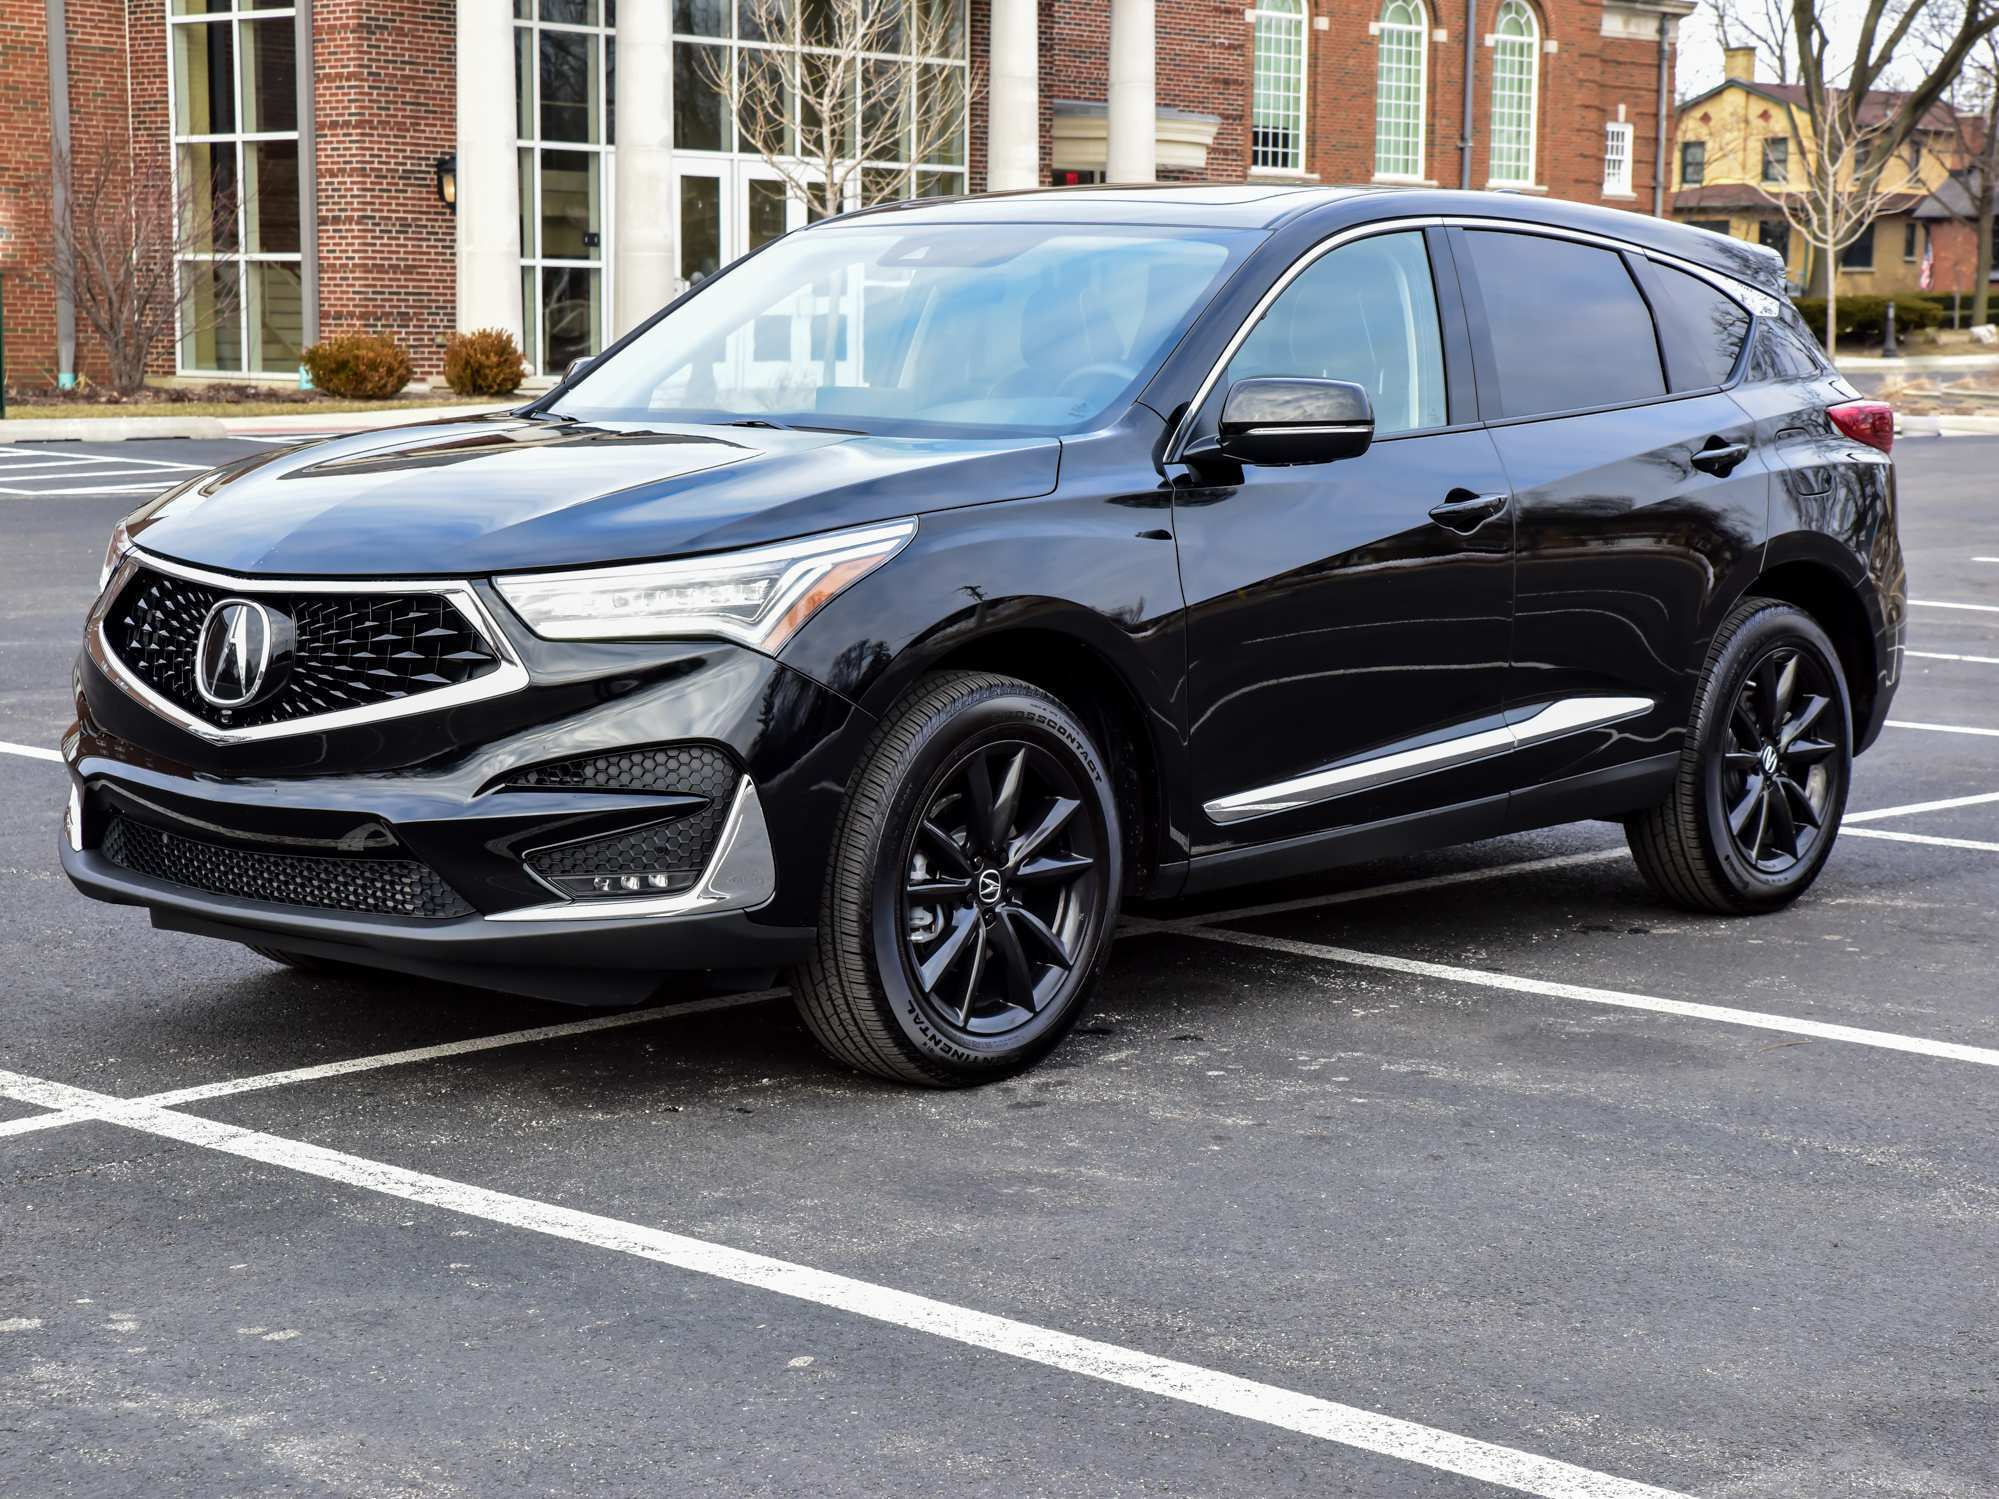 87 The 2019 Acura RDX Exterior And Interior